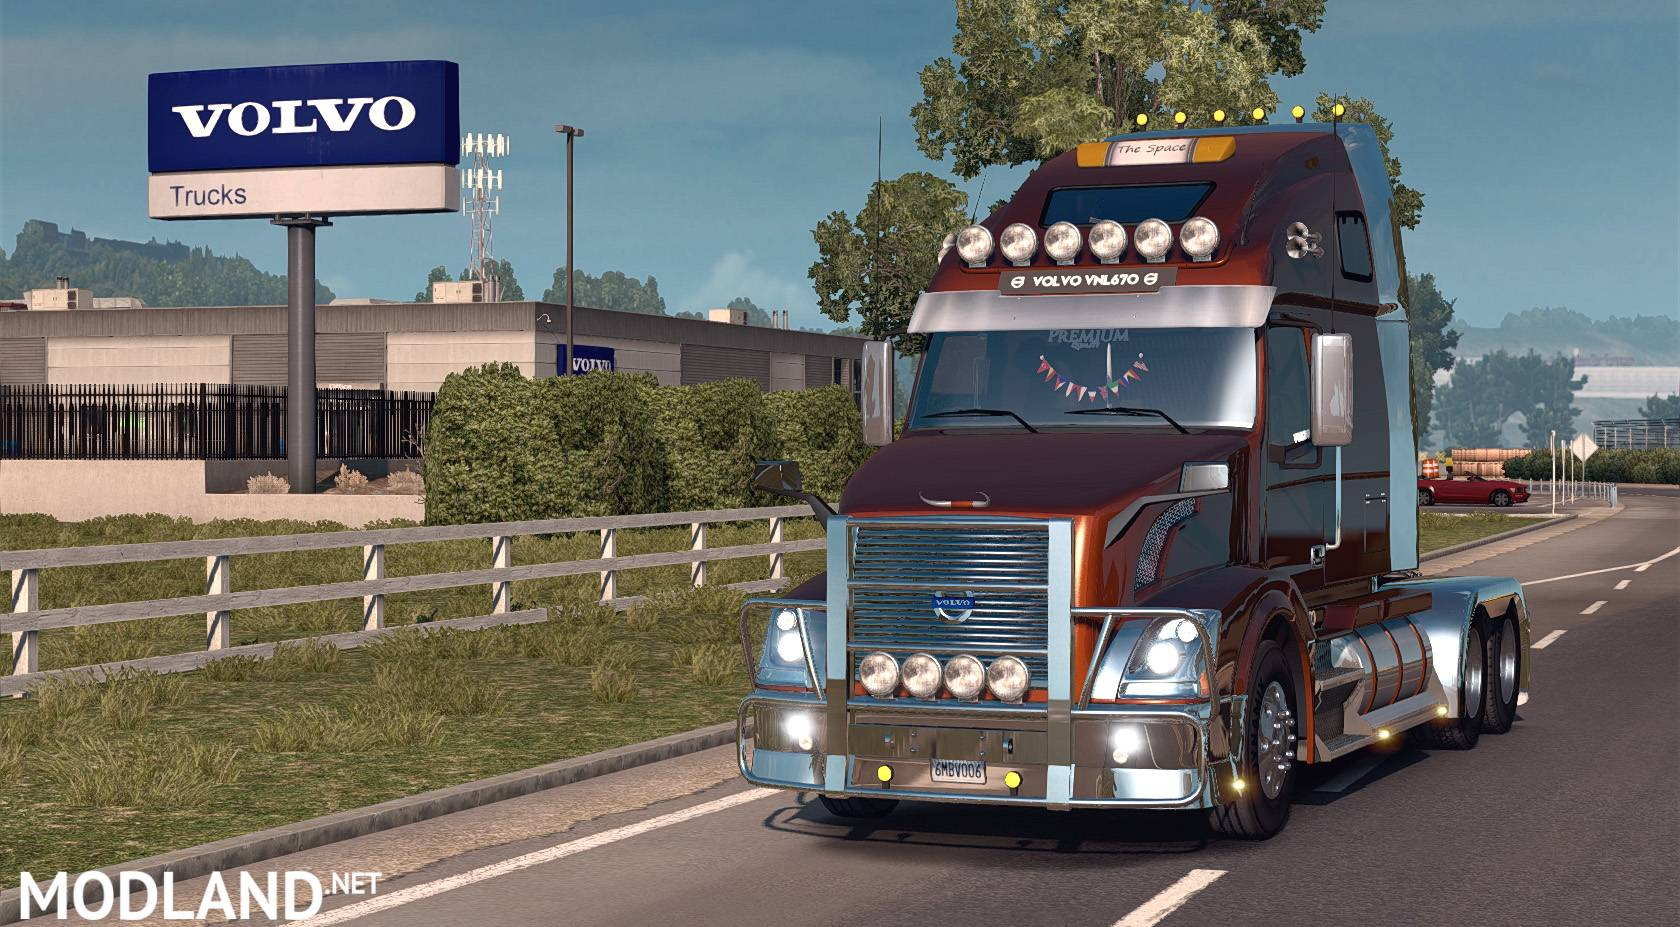 Volvo VNL670 v 1.4.2 (Only for ATS v1.3) mod for American Truck Simulator, ATS